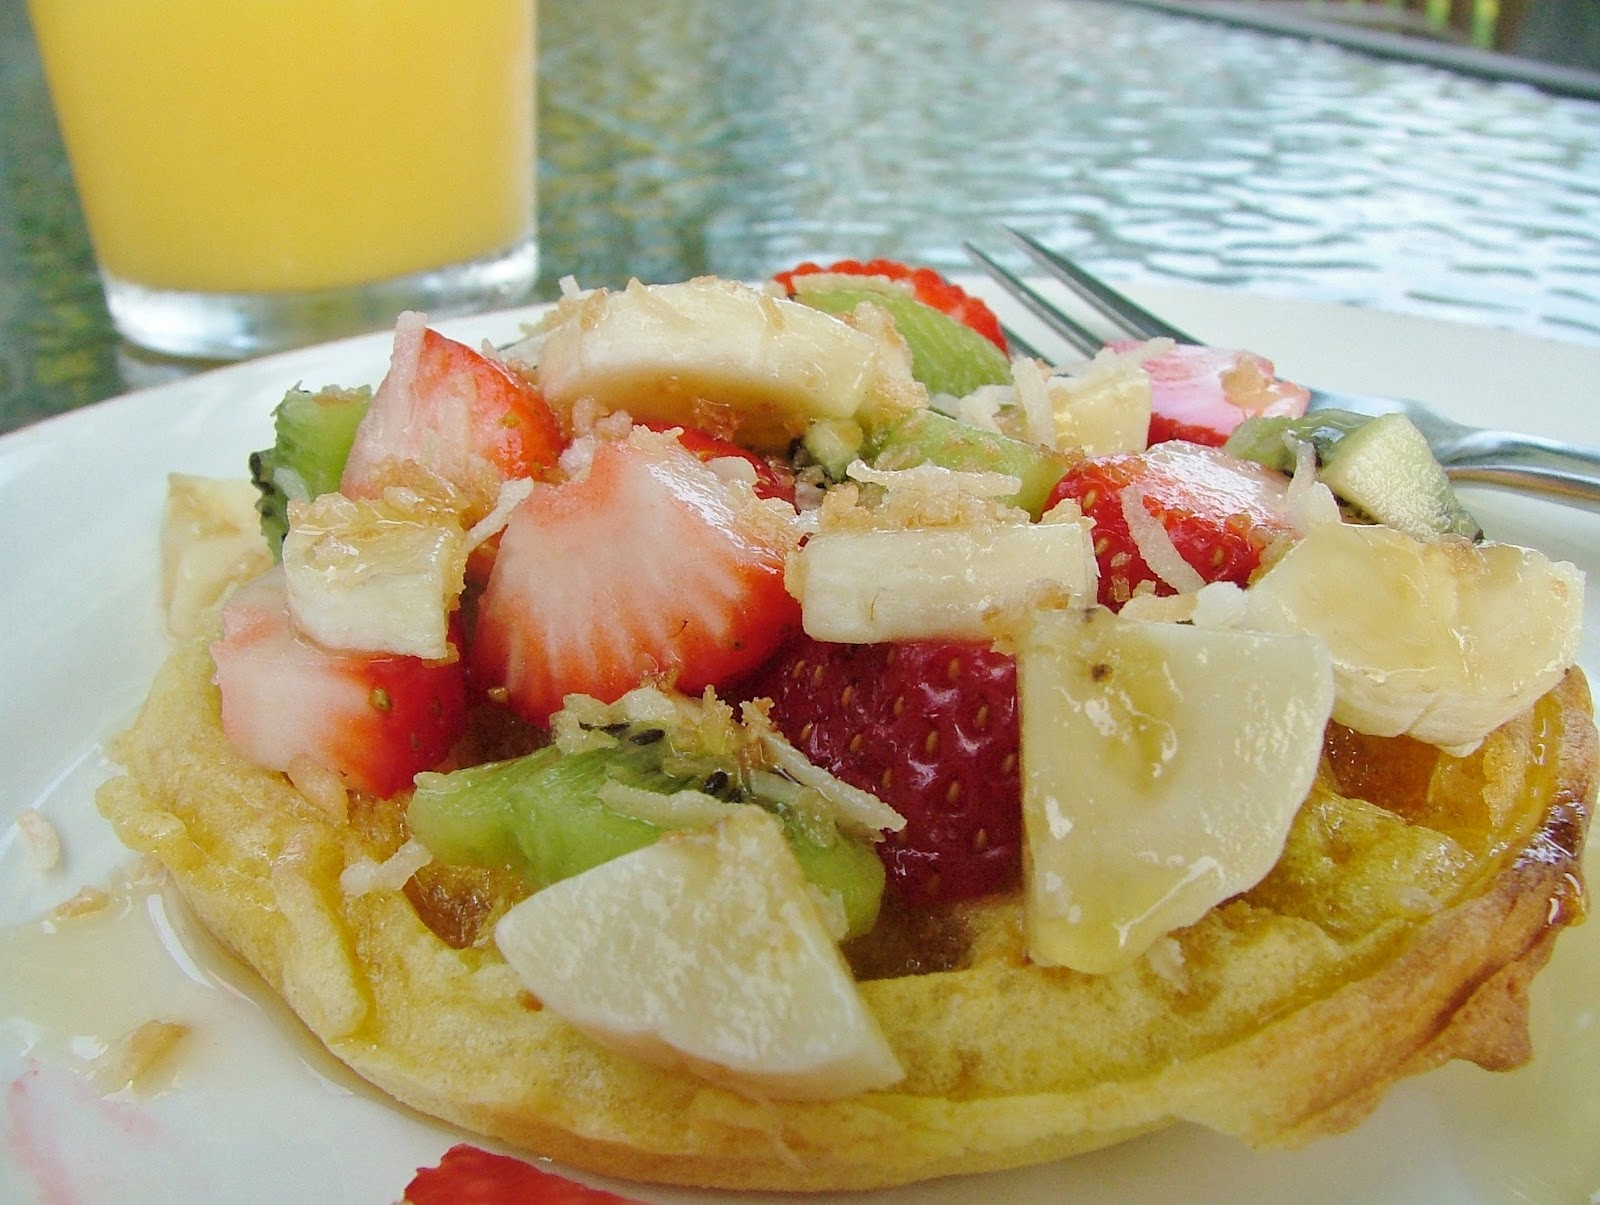 Healthy Frozen Waffles  The Cook a Palooza Experience Three Healthy Ways to Top